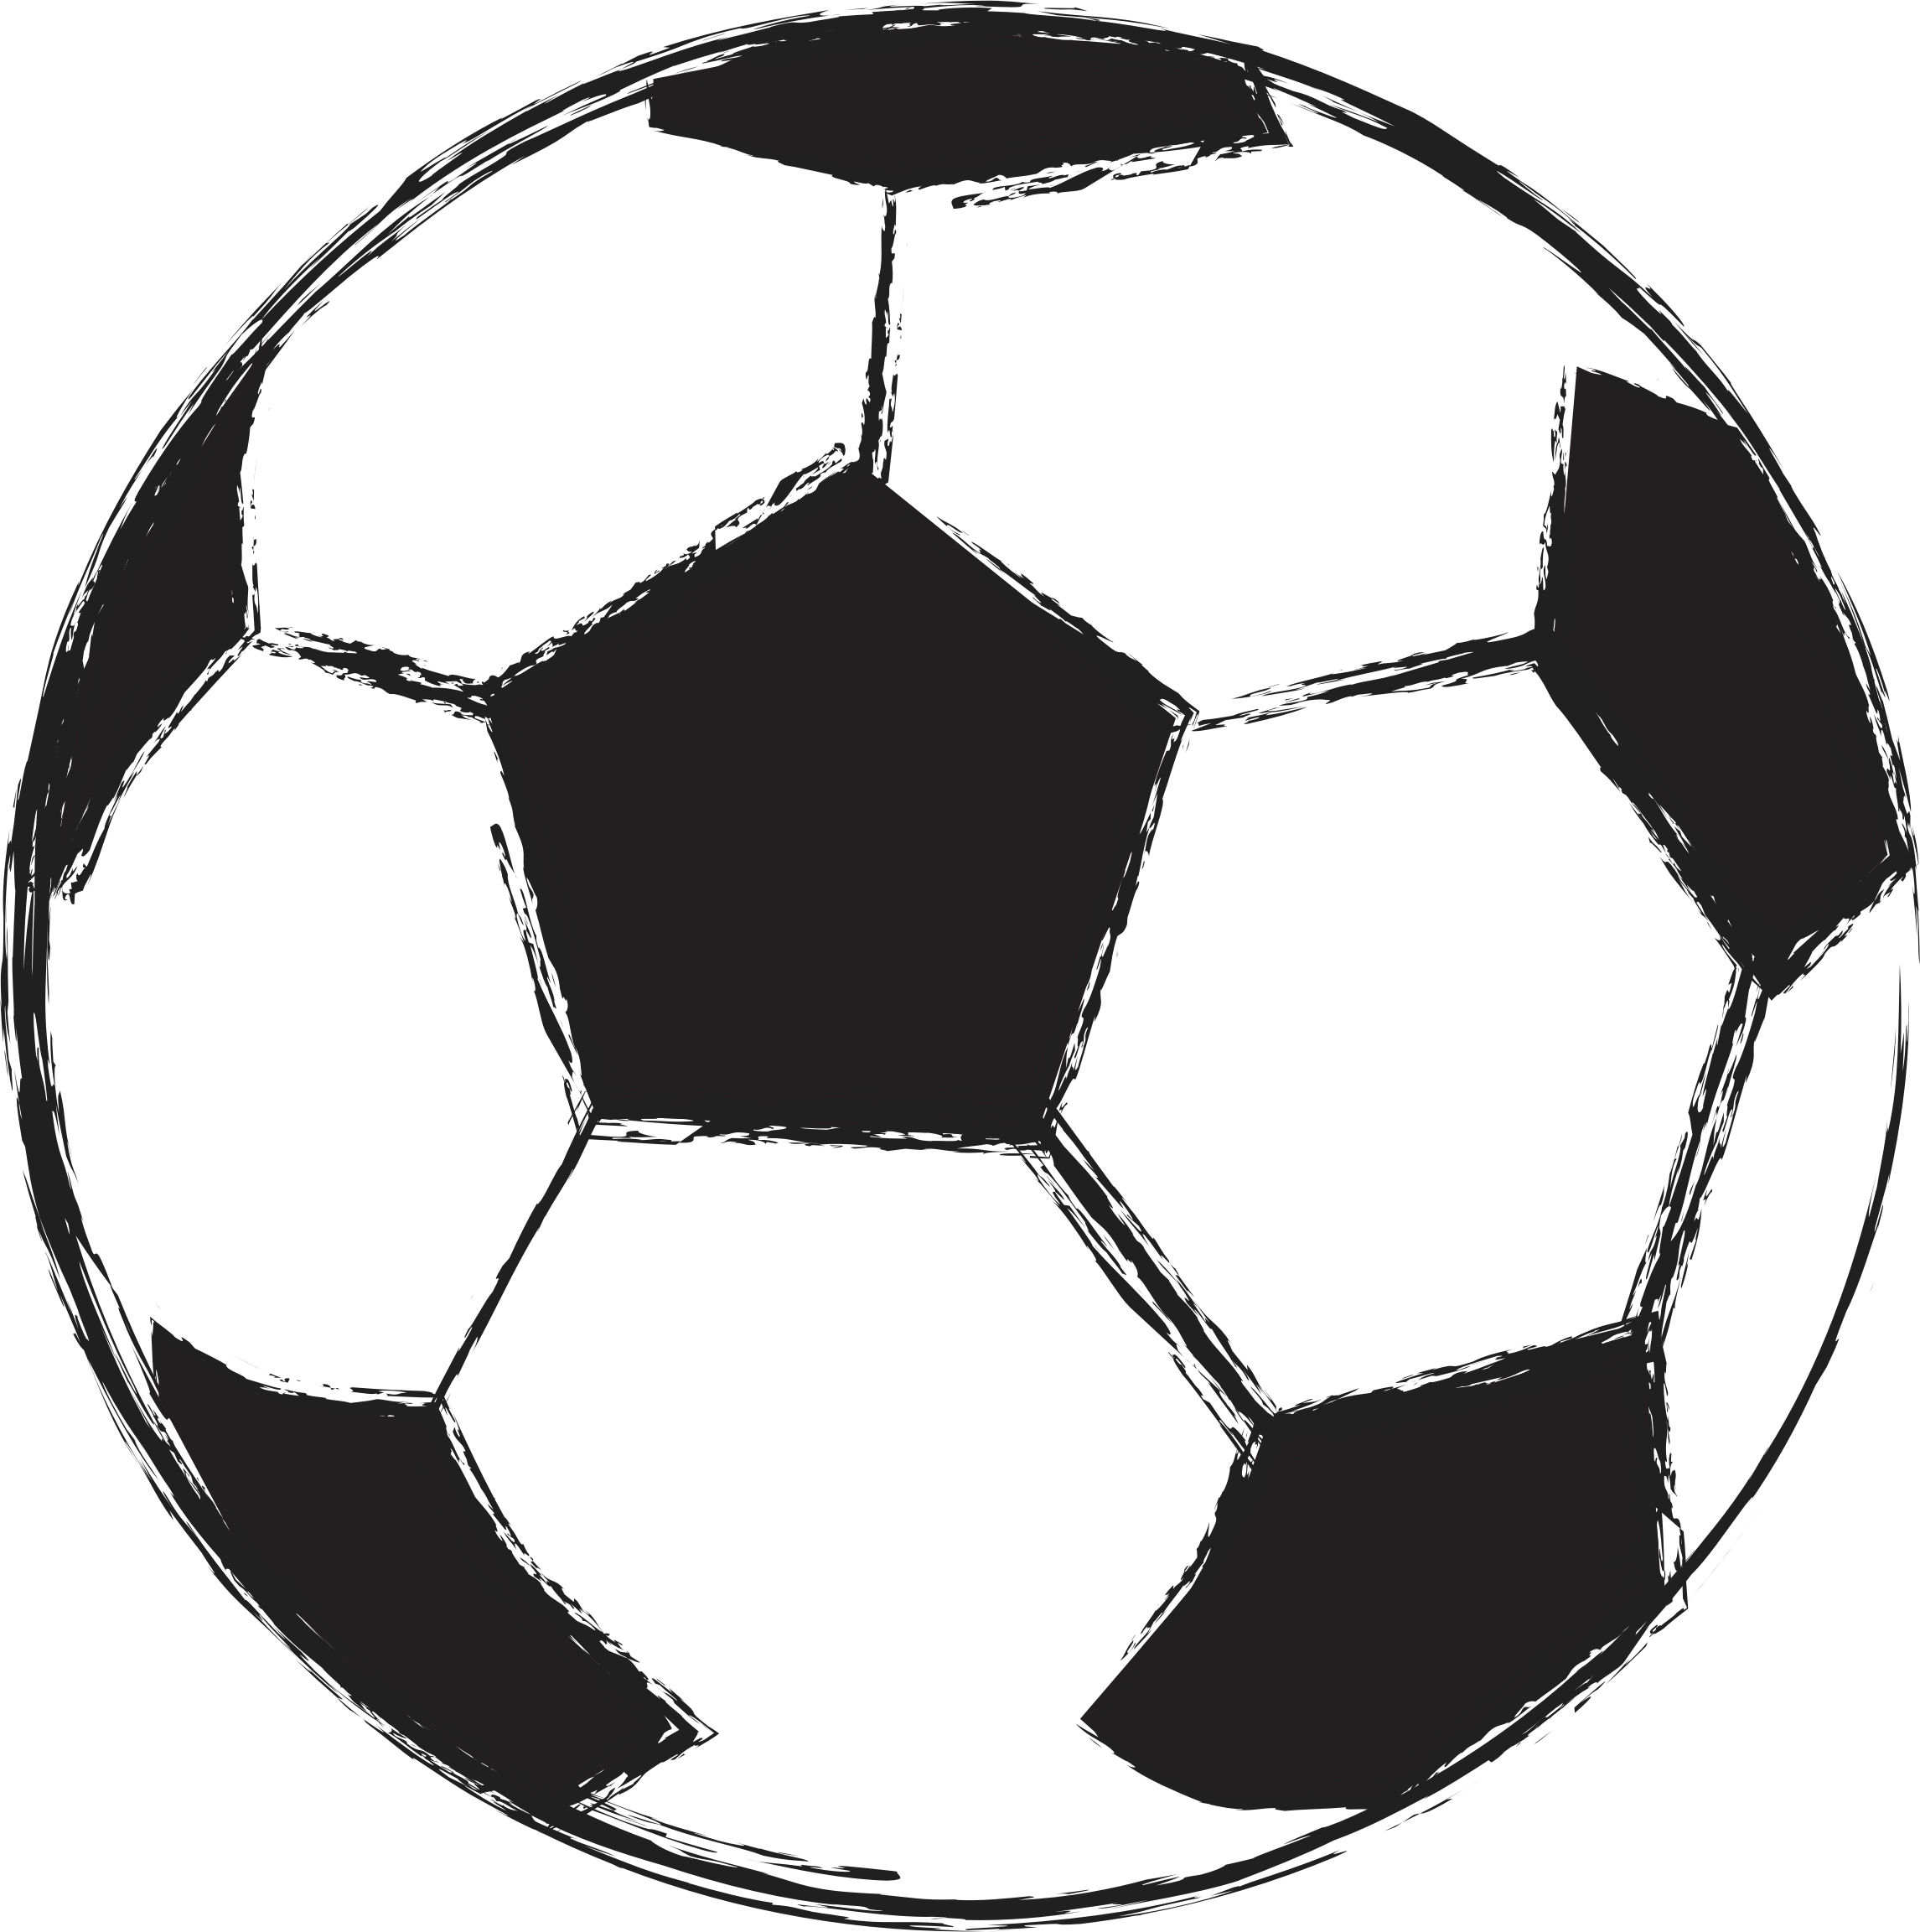 Png images ball. Top drawing football free stock